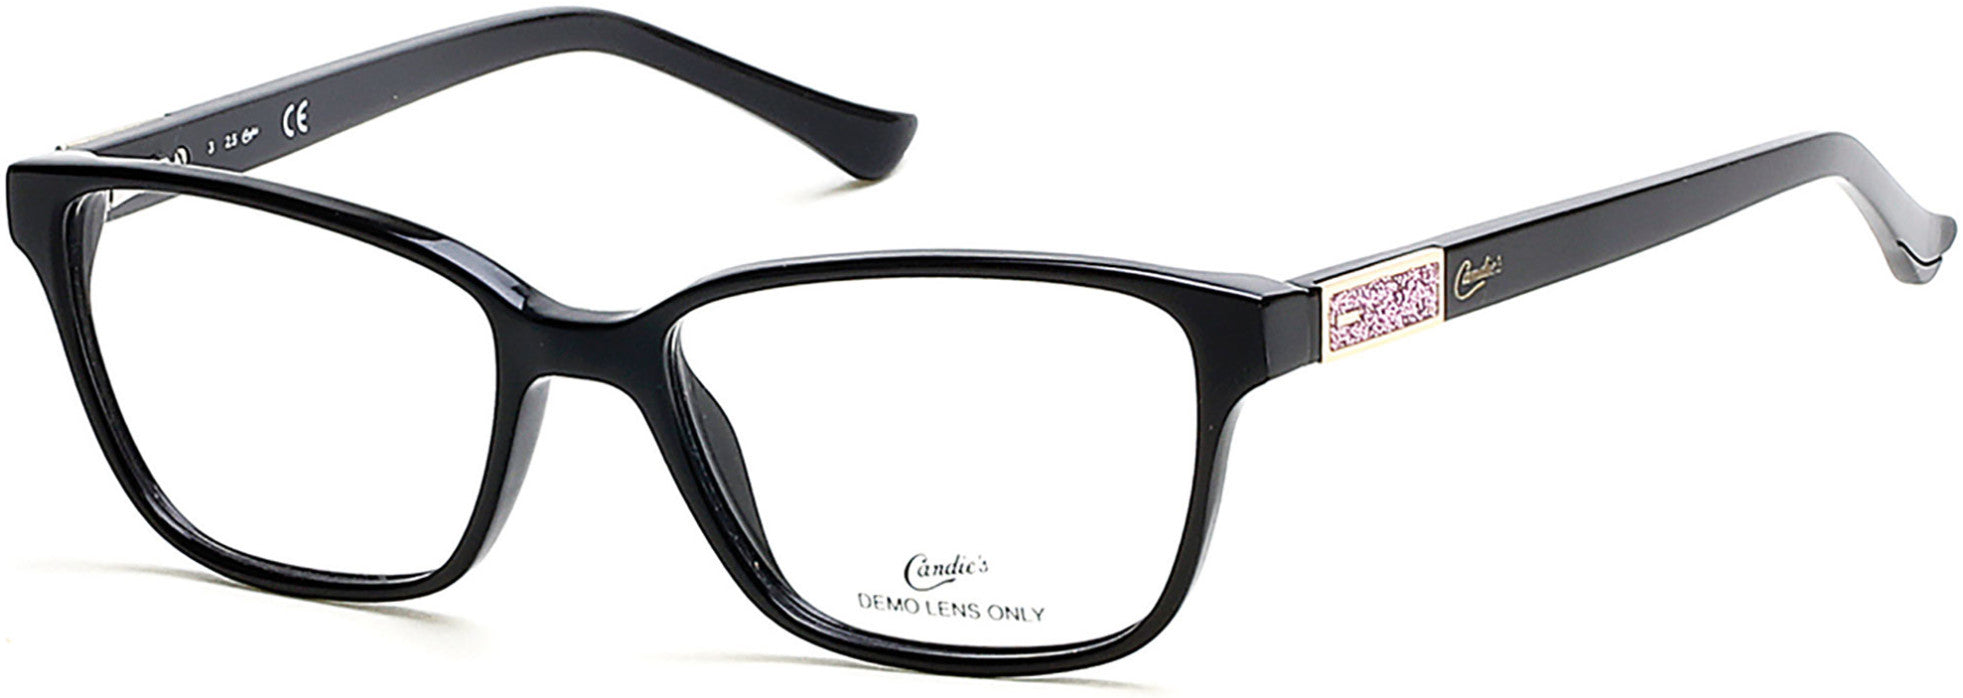 Candies CA0129 Geometric Eyeglasses 005-005 - Black